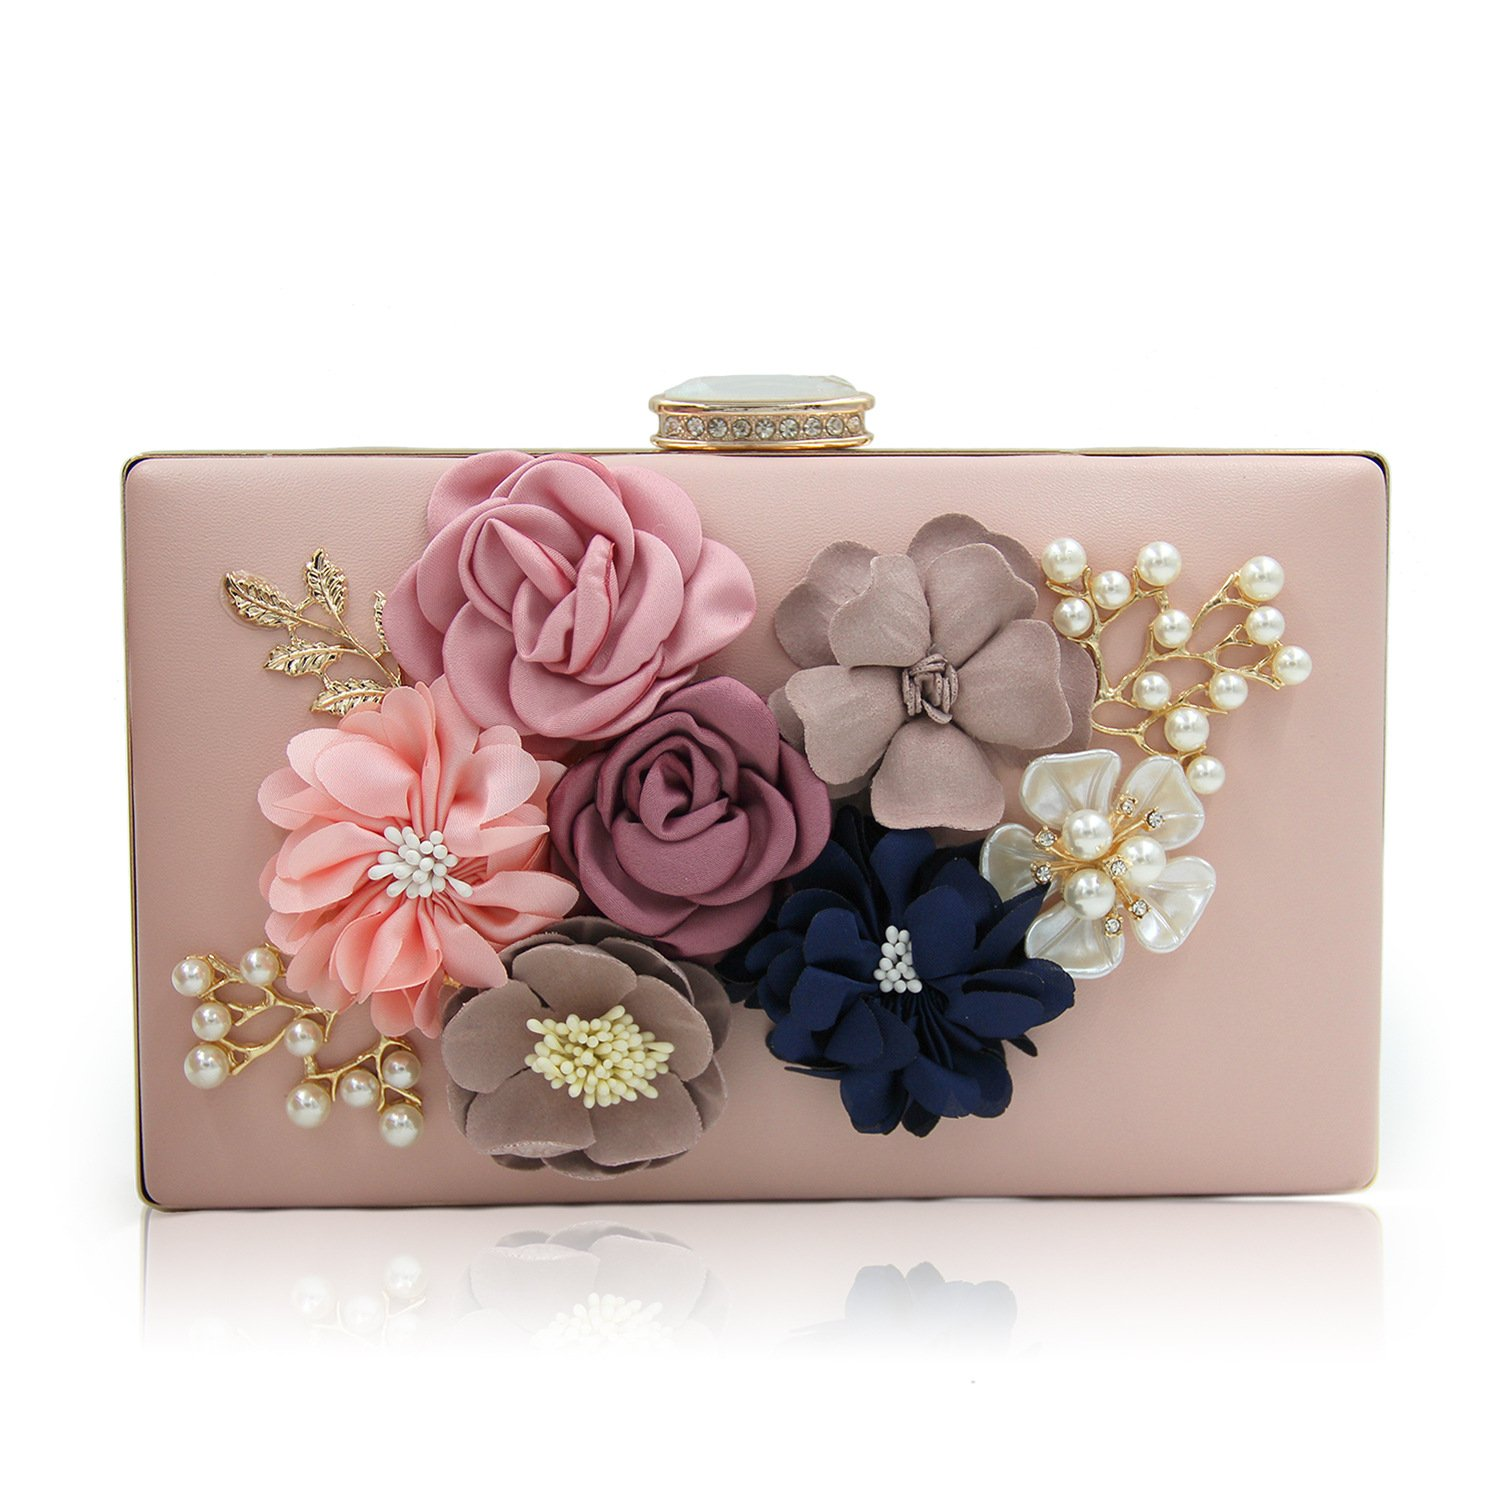 Tom Clovers Womens Flower Pearl PU Leather Cocktail Evening Handbag Clutch Wedding Crossbody Purse with Detachable Long and Short Chain Pink